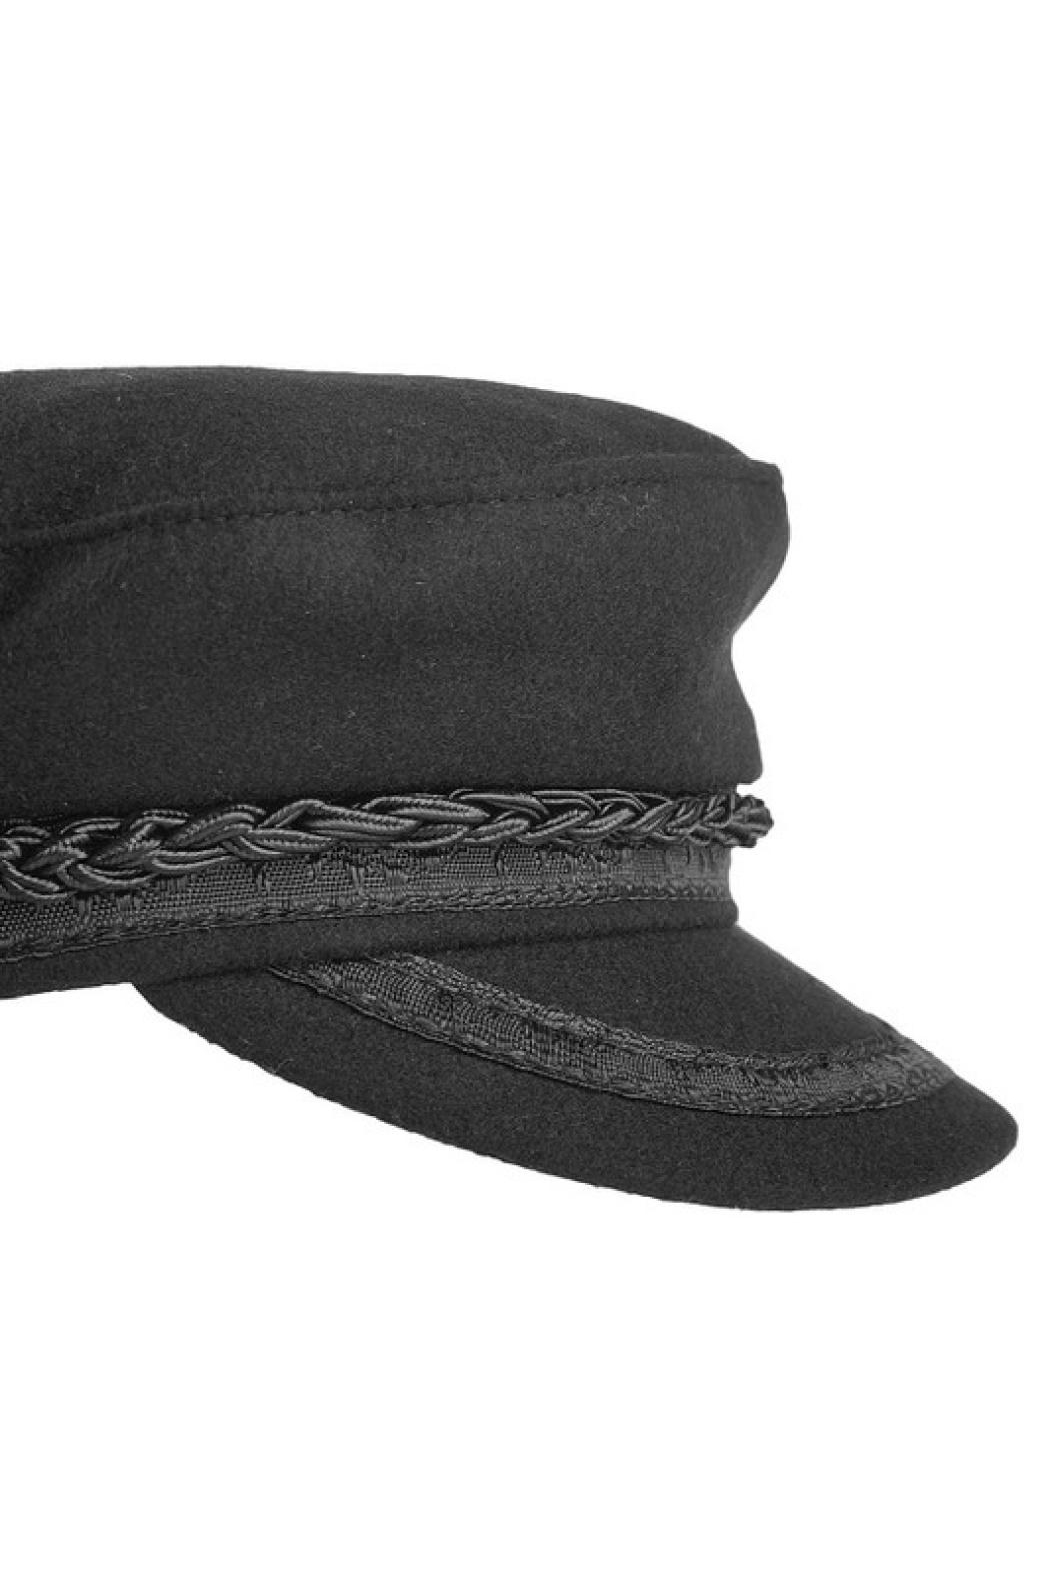 Olive & Pique Sailor Style Cap - Front Full Image